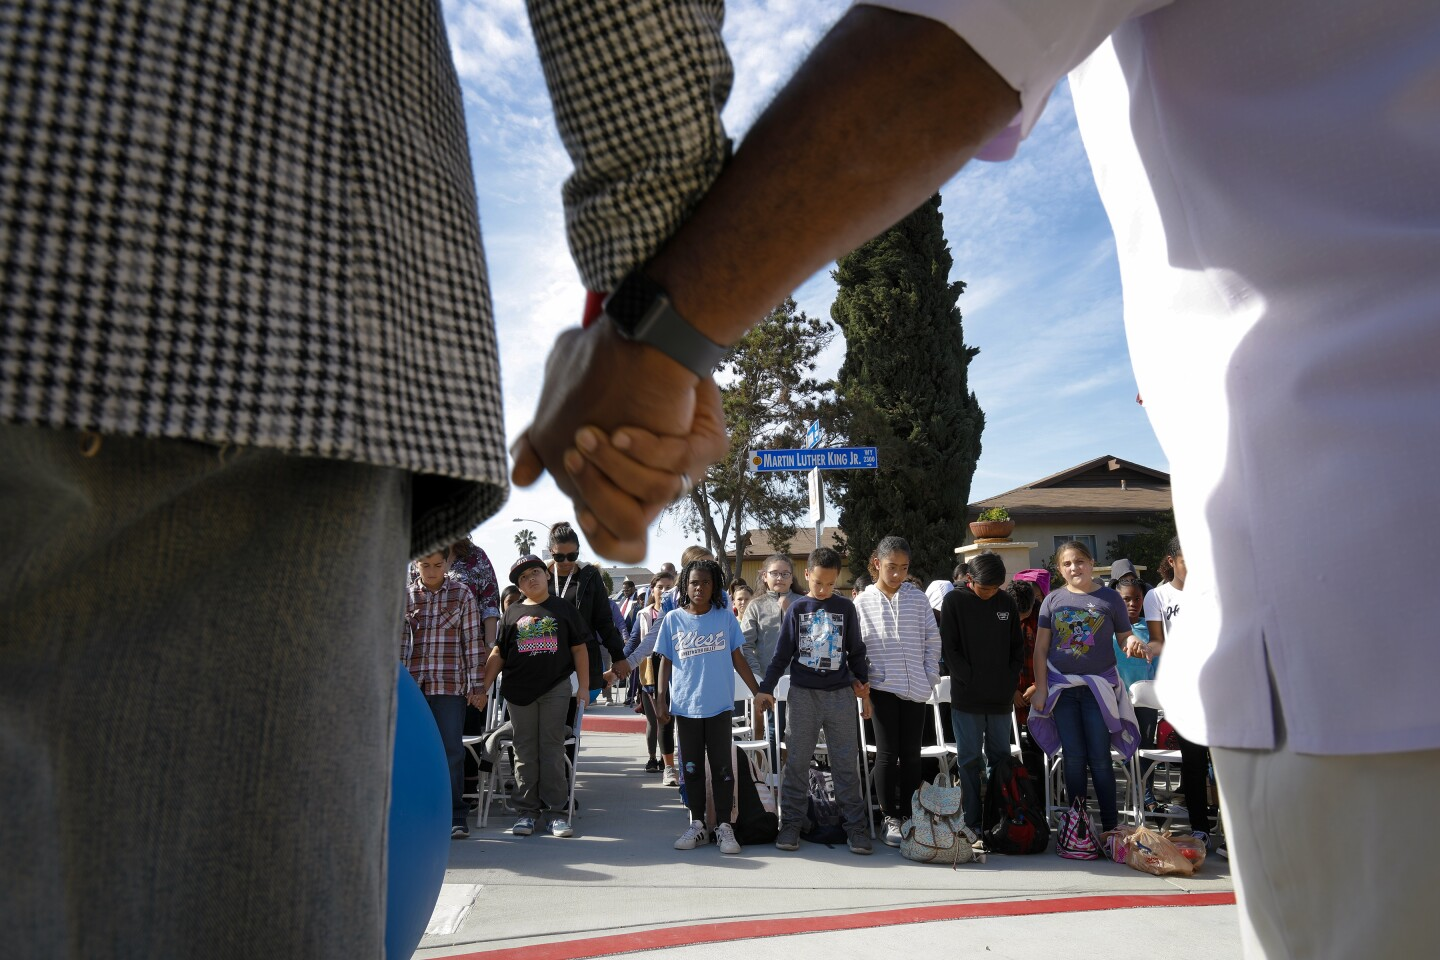 Michael J. Trice (l) and Tommie Vance (r) invite everyone to hold hands during the benediction at the MLK Annual Laying of the Wreath on January 15, 2020 at the Broadway Height community in San Diego.